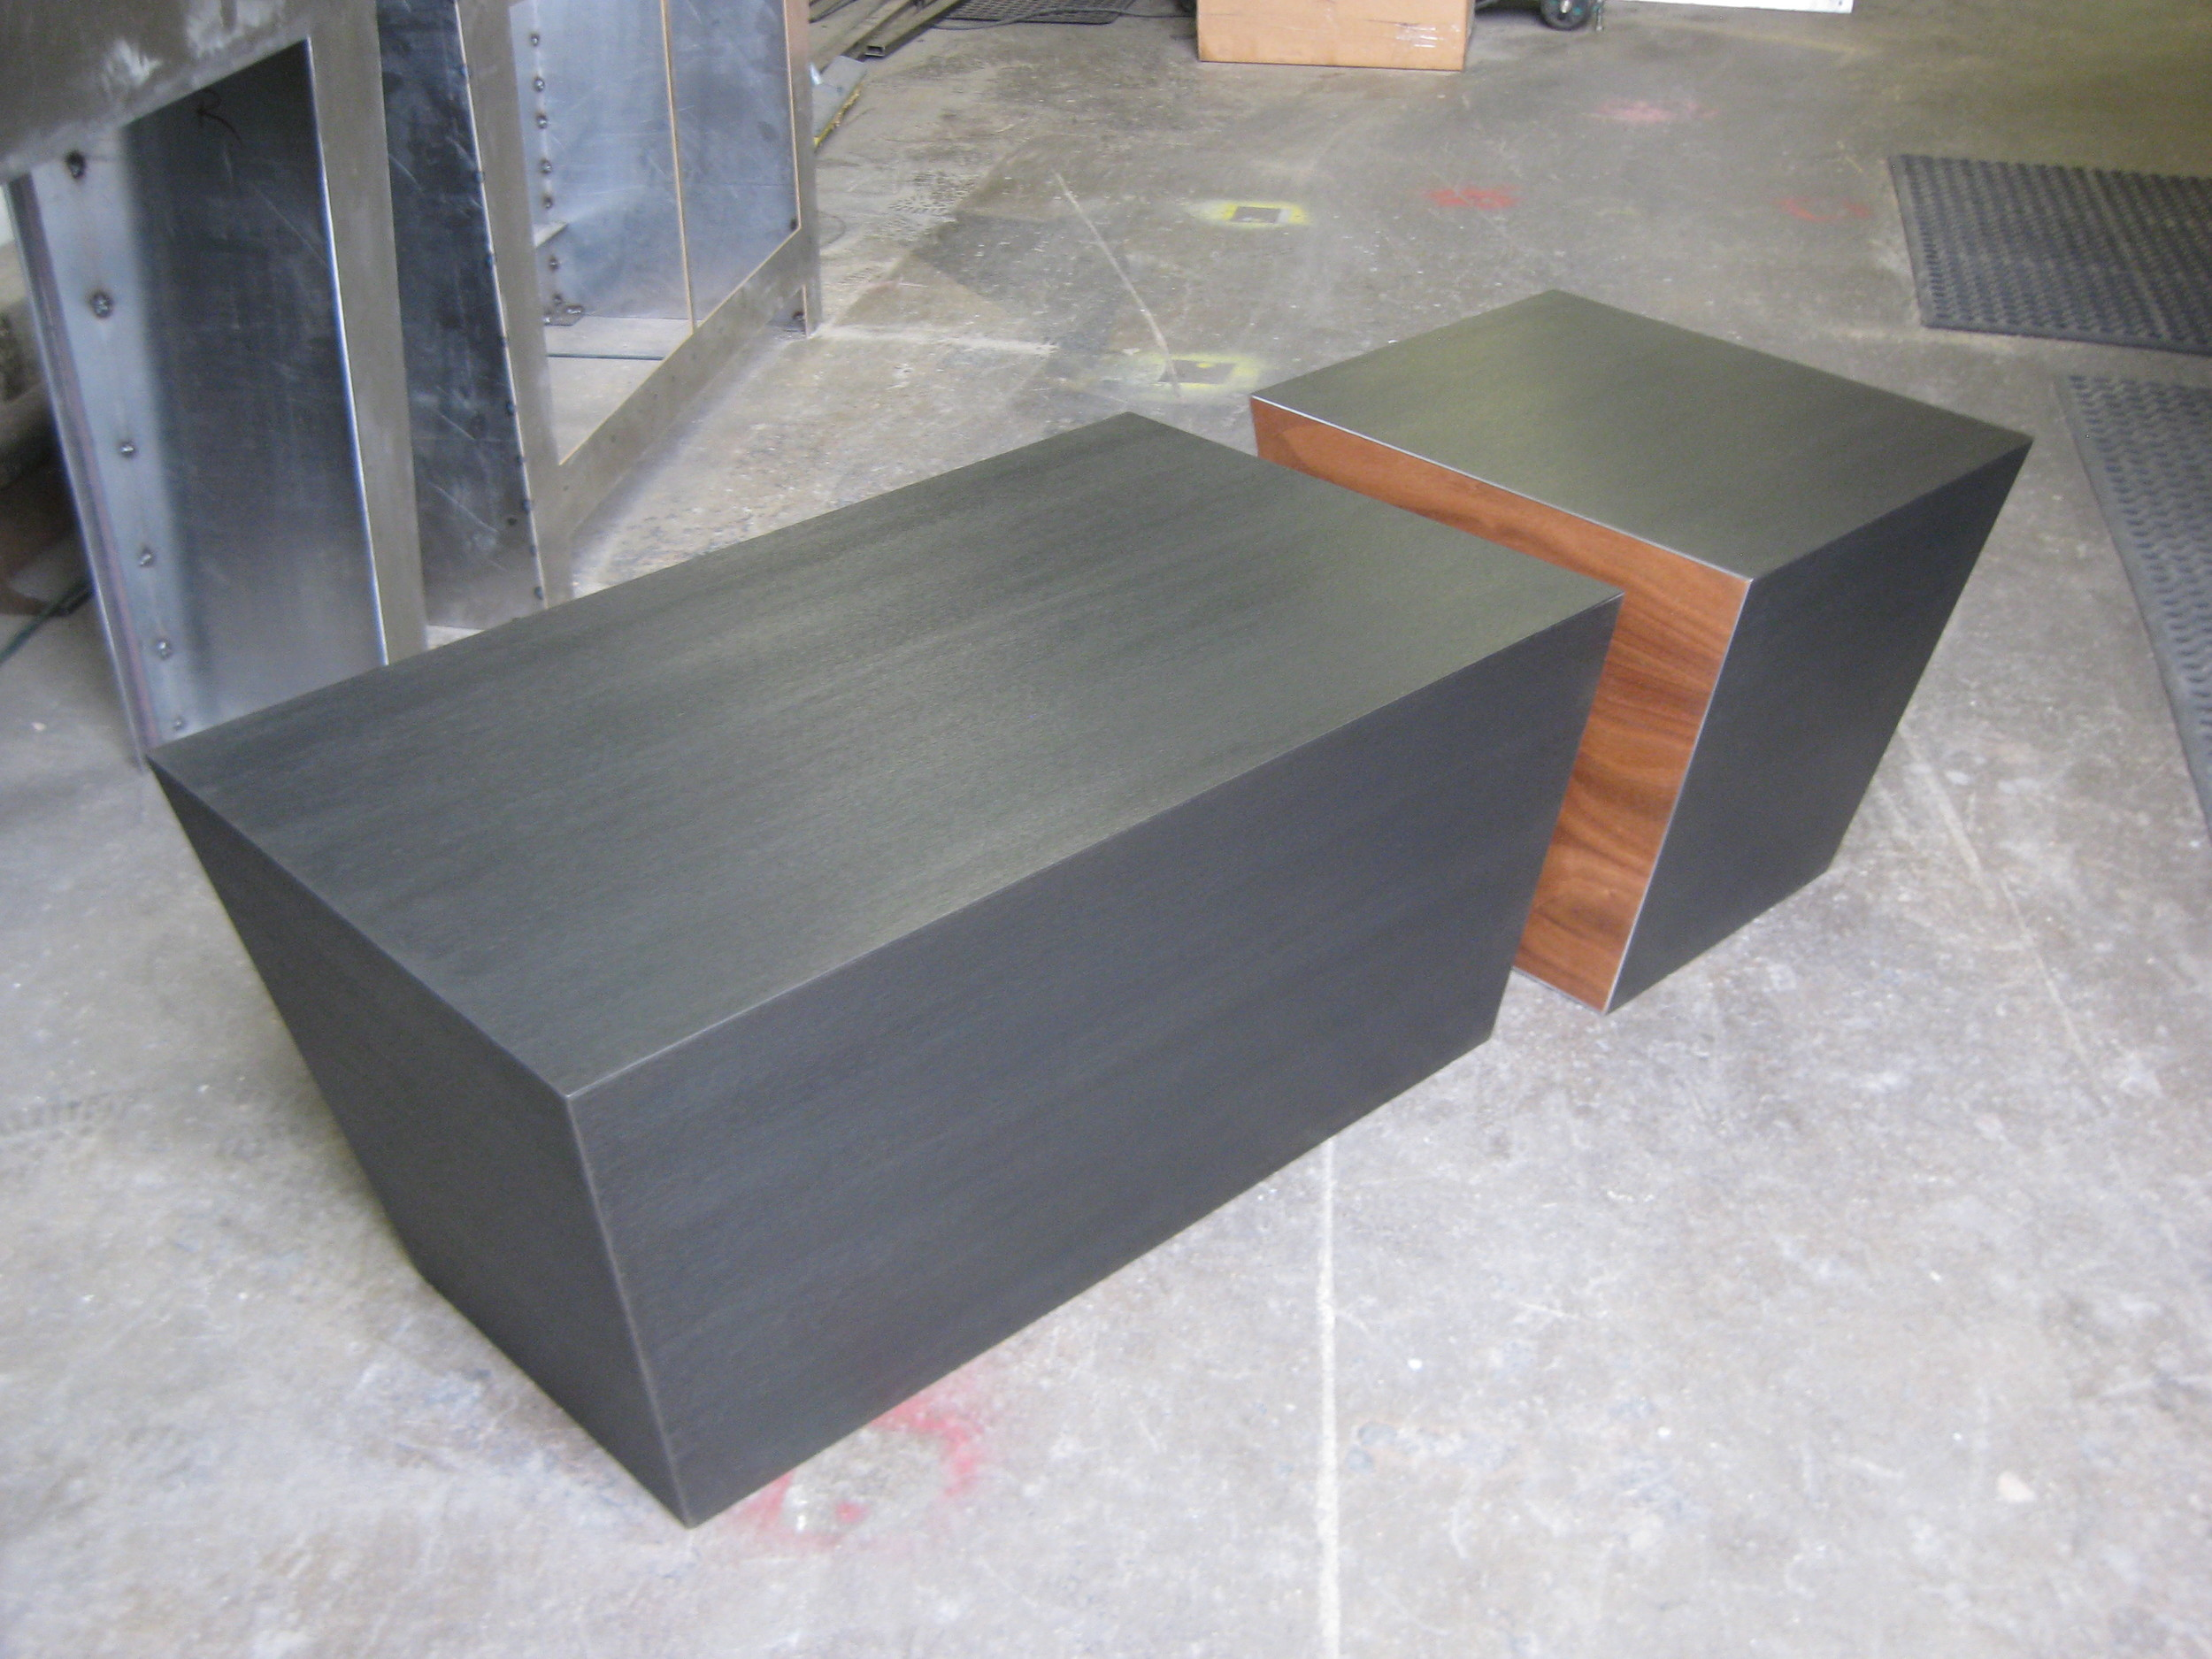 """Cube"" Coffee Table  Hand finished steel with a dark grey patina and one of a kind grain. Available in various wood inlay options, shown in walnut. Finished with a durable, water based matte/semi-gloss clear coat."